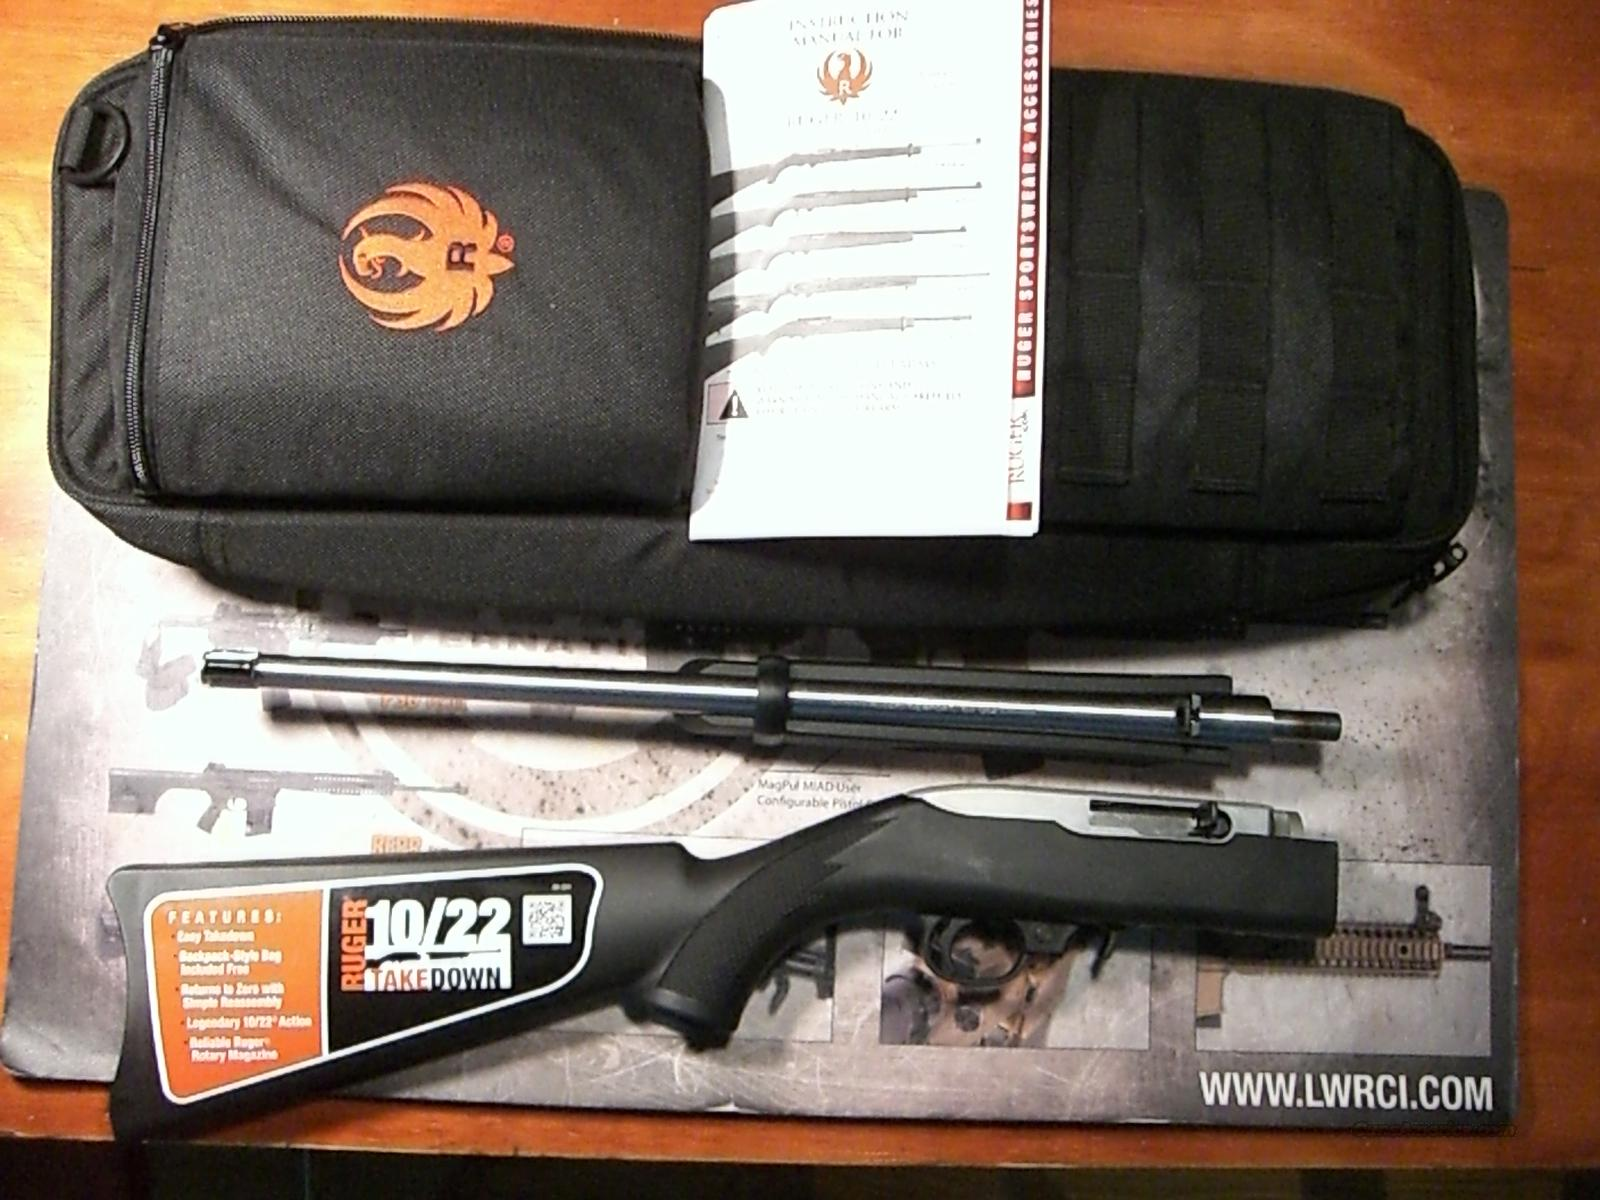 Ruger 10/22 Takedown, Stainless  Guns > Rifles > Ruger Rifles > 10-22